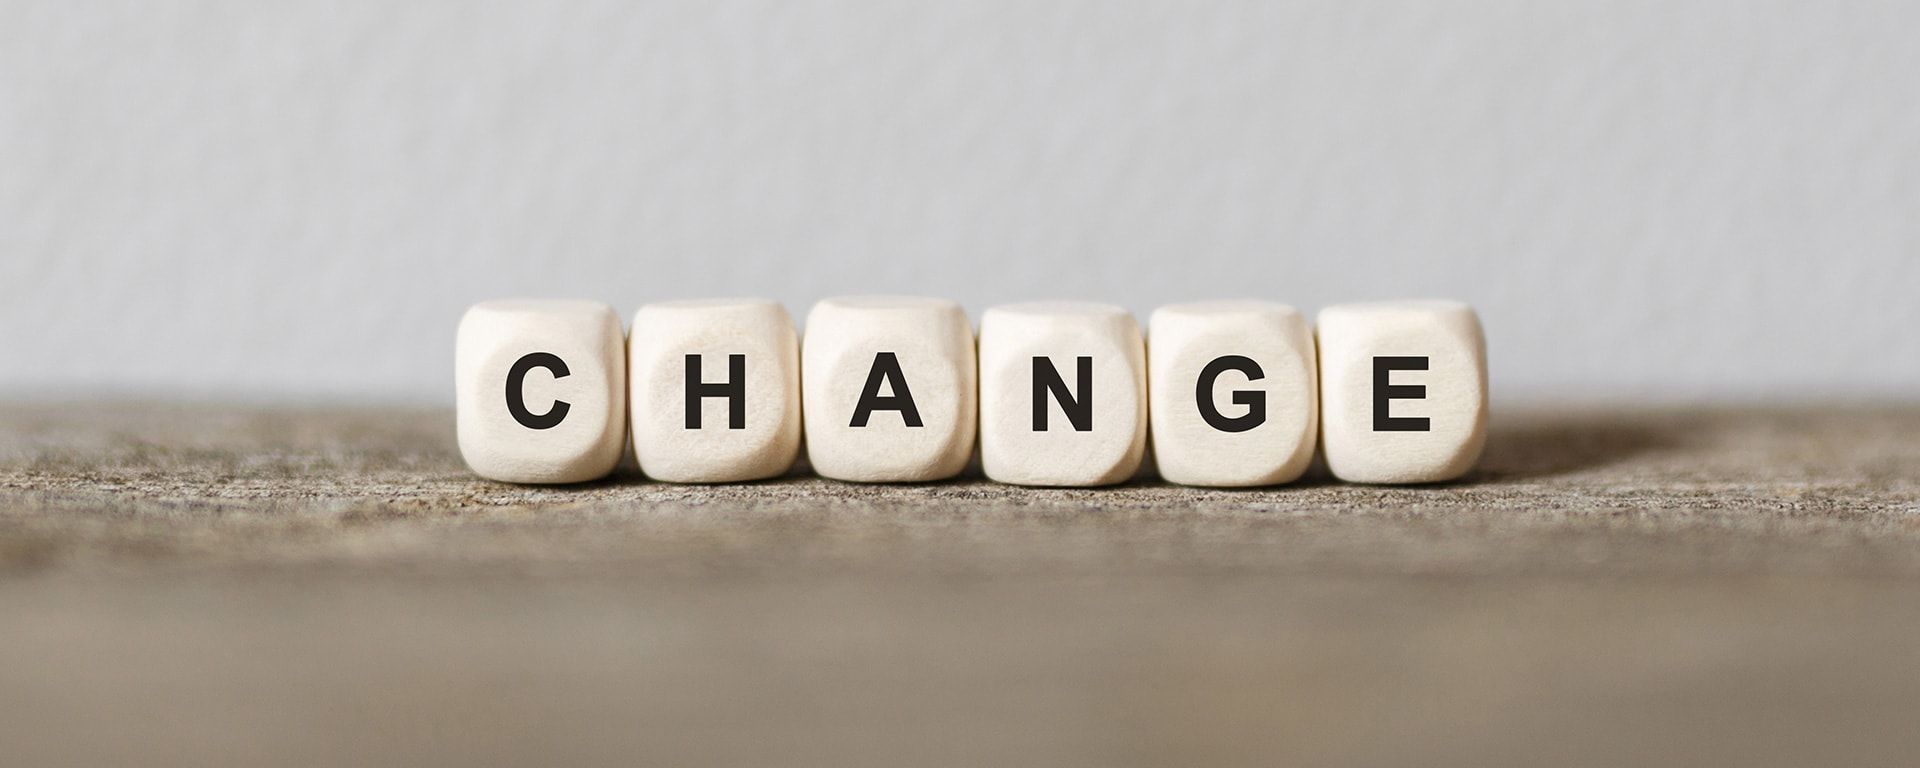 change at work survey - cubes in a row show the word change